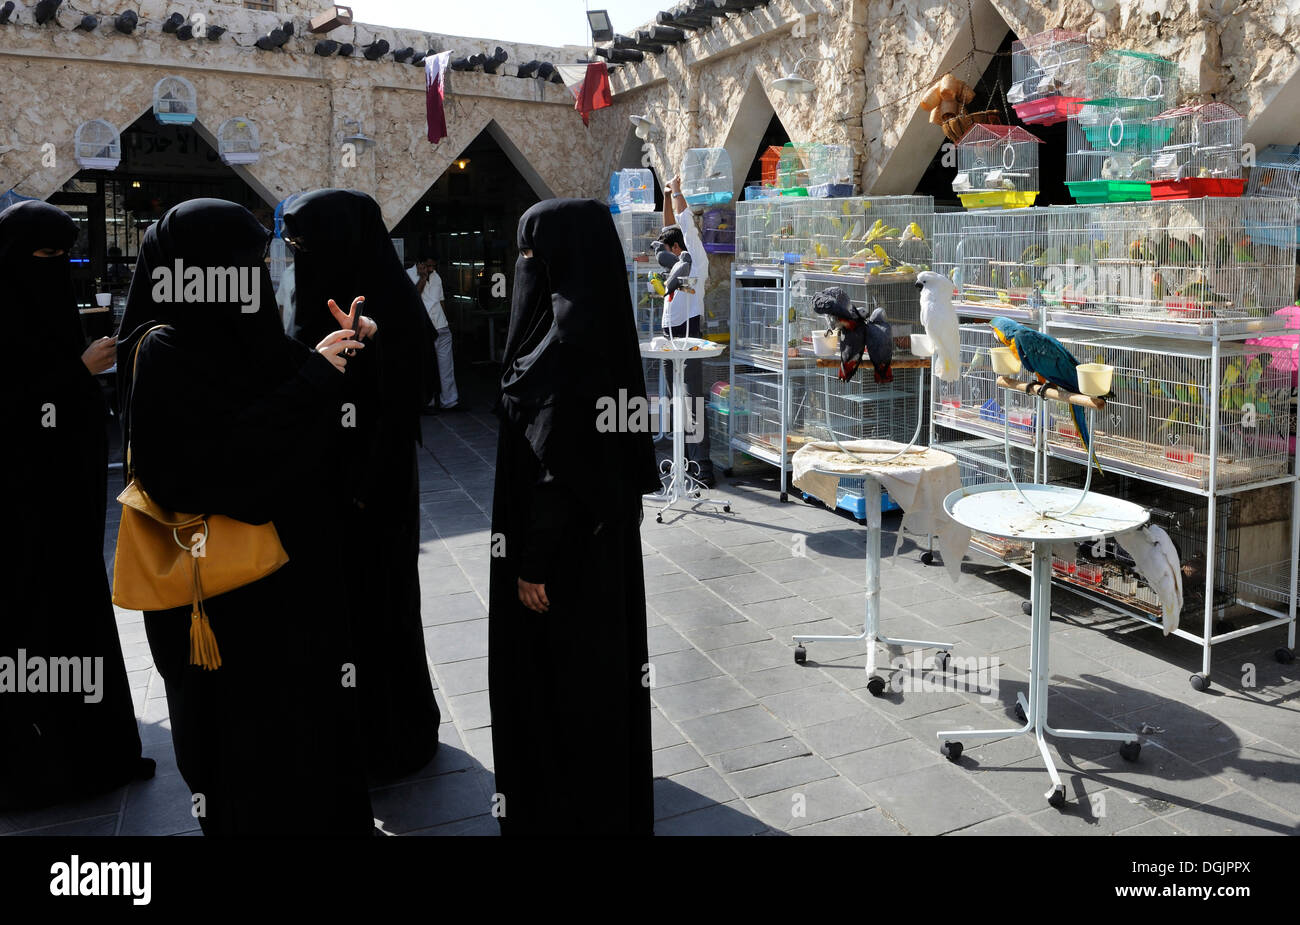 Womenwearing traditional burqa taking photographs of each other at the animal market in Souq al Waqif, the oldest souq or bazaar - Stock Image